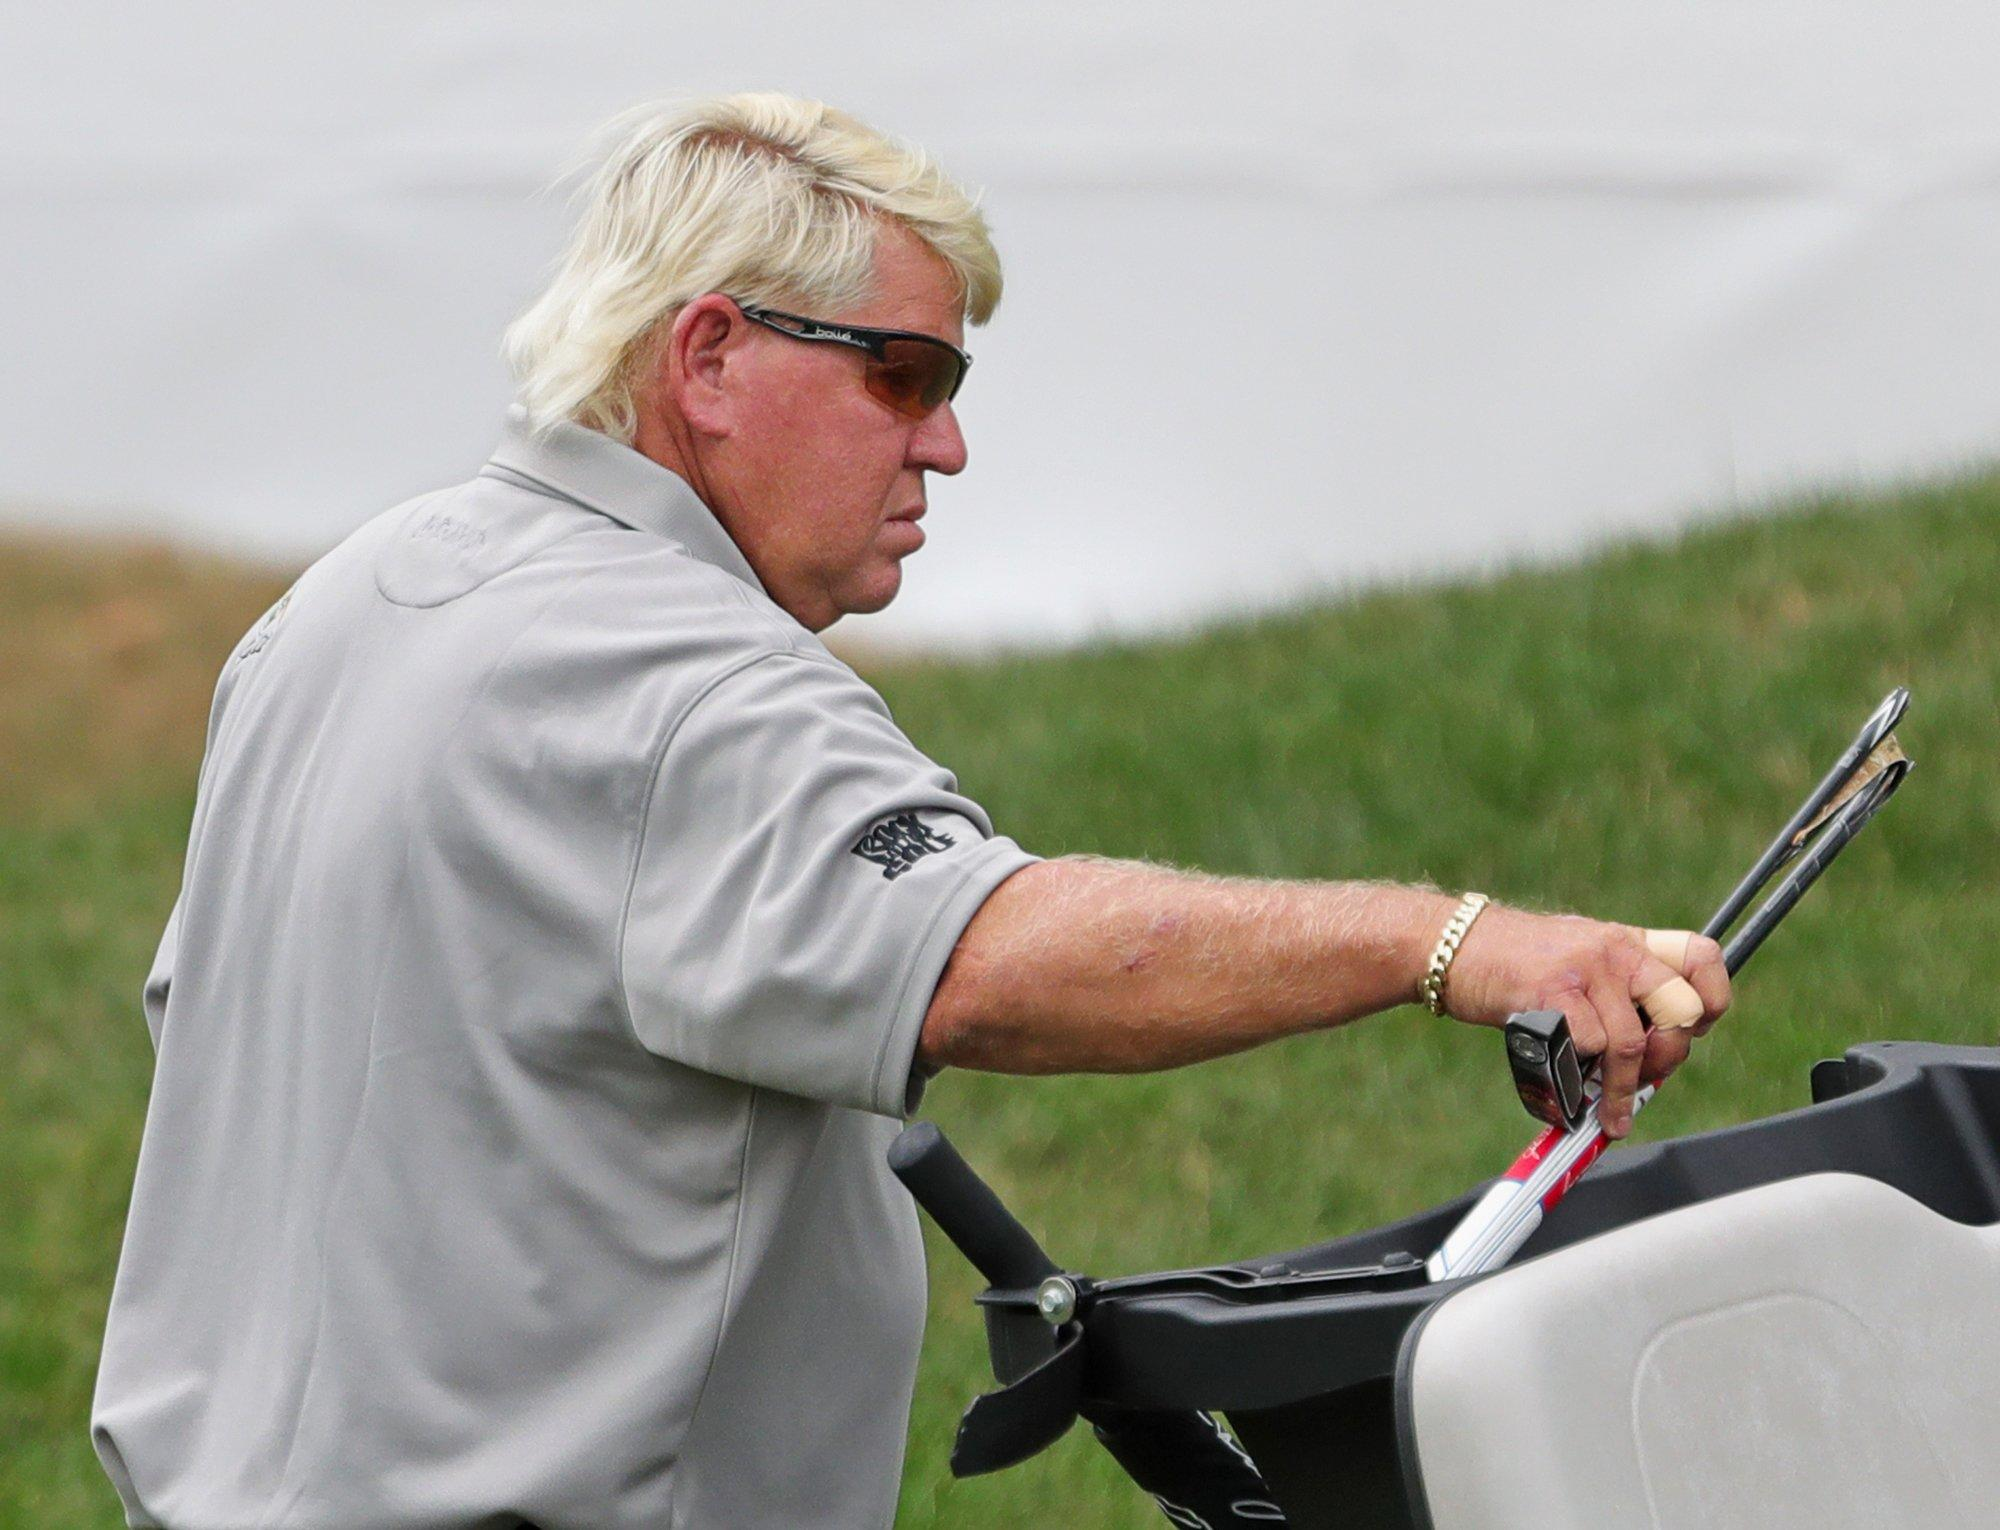 John Daly's snapped putter aside, Senior Players was eerily quiet